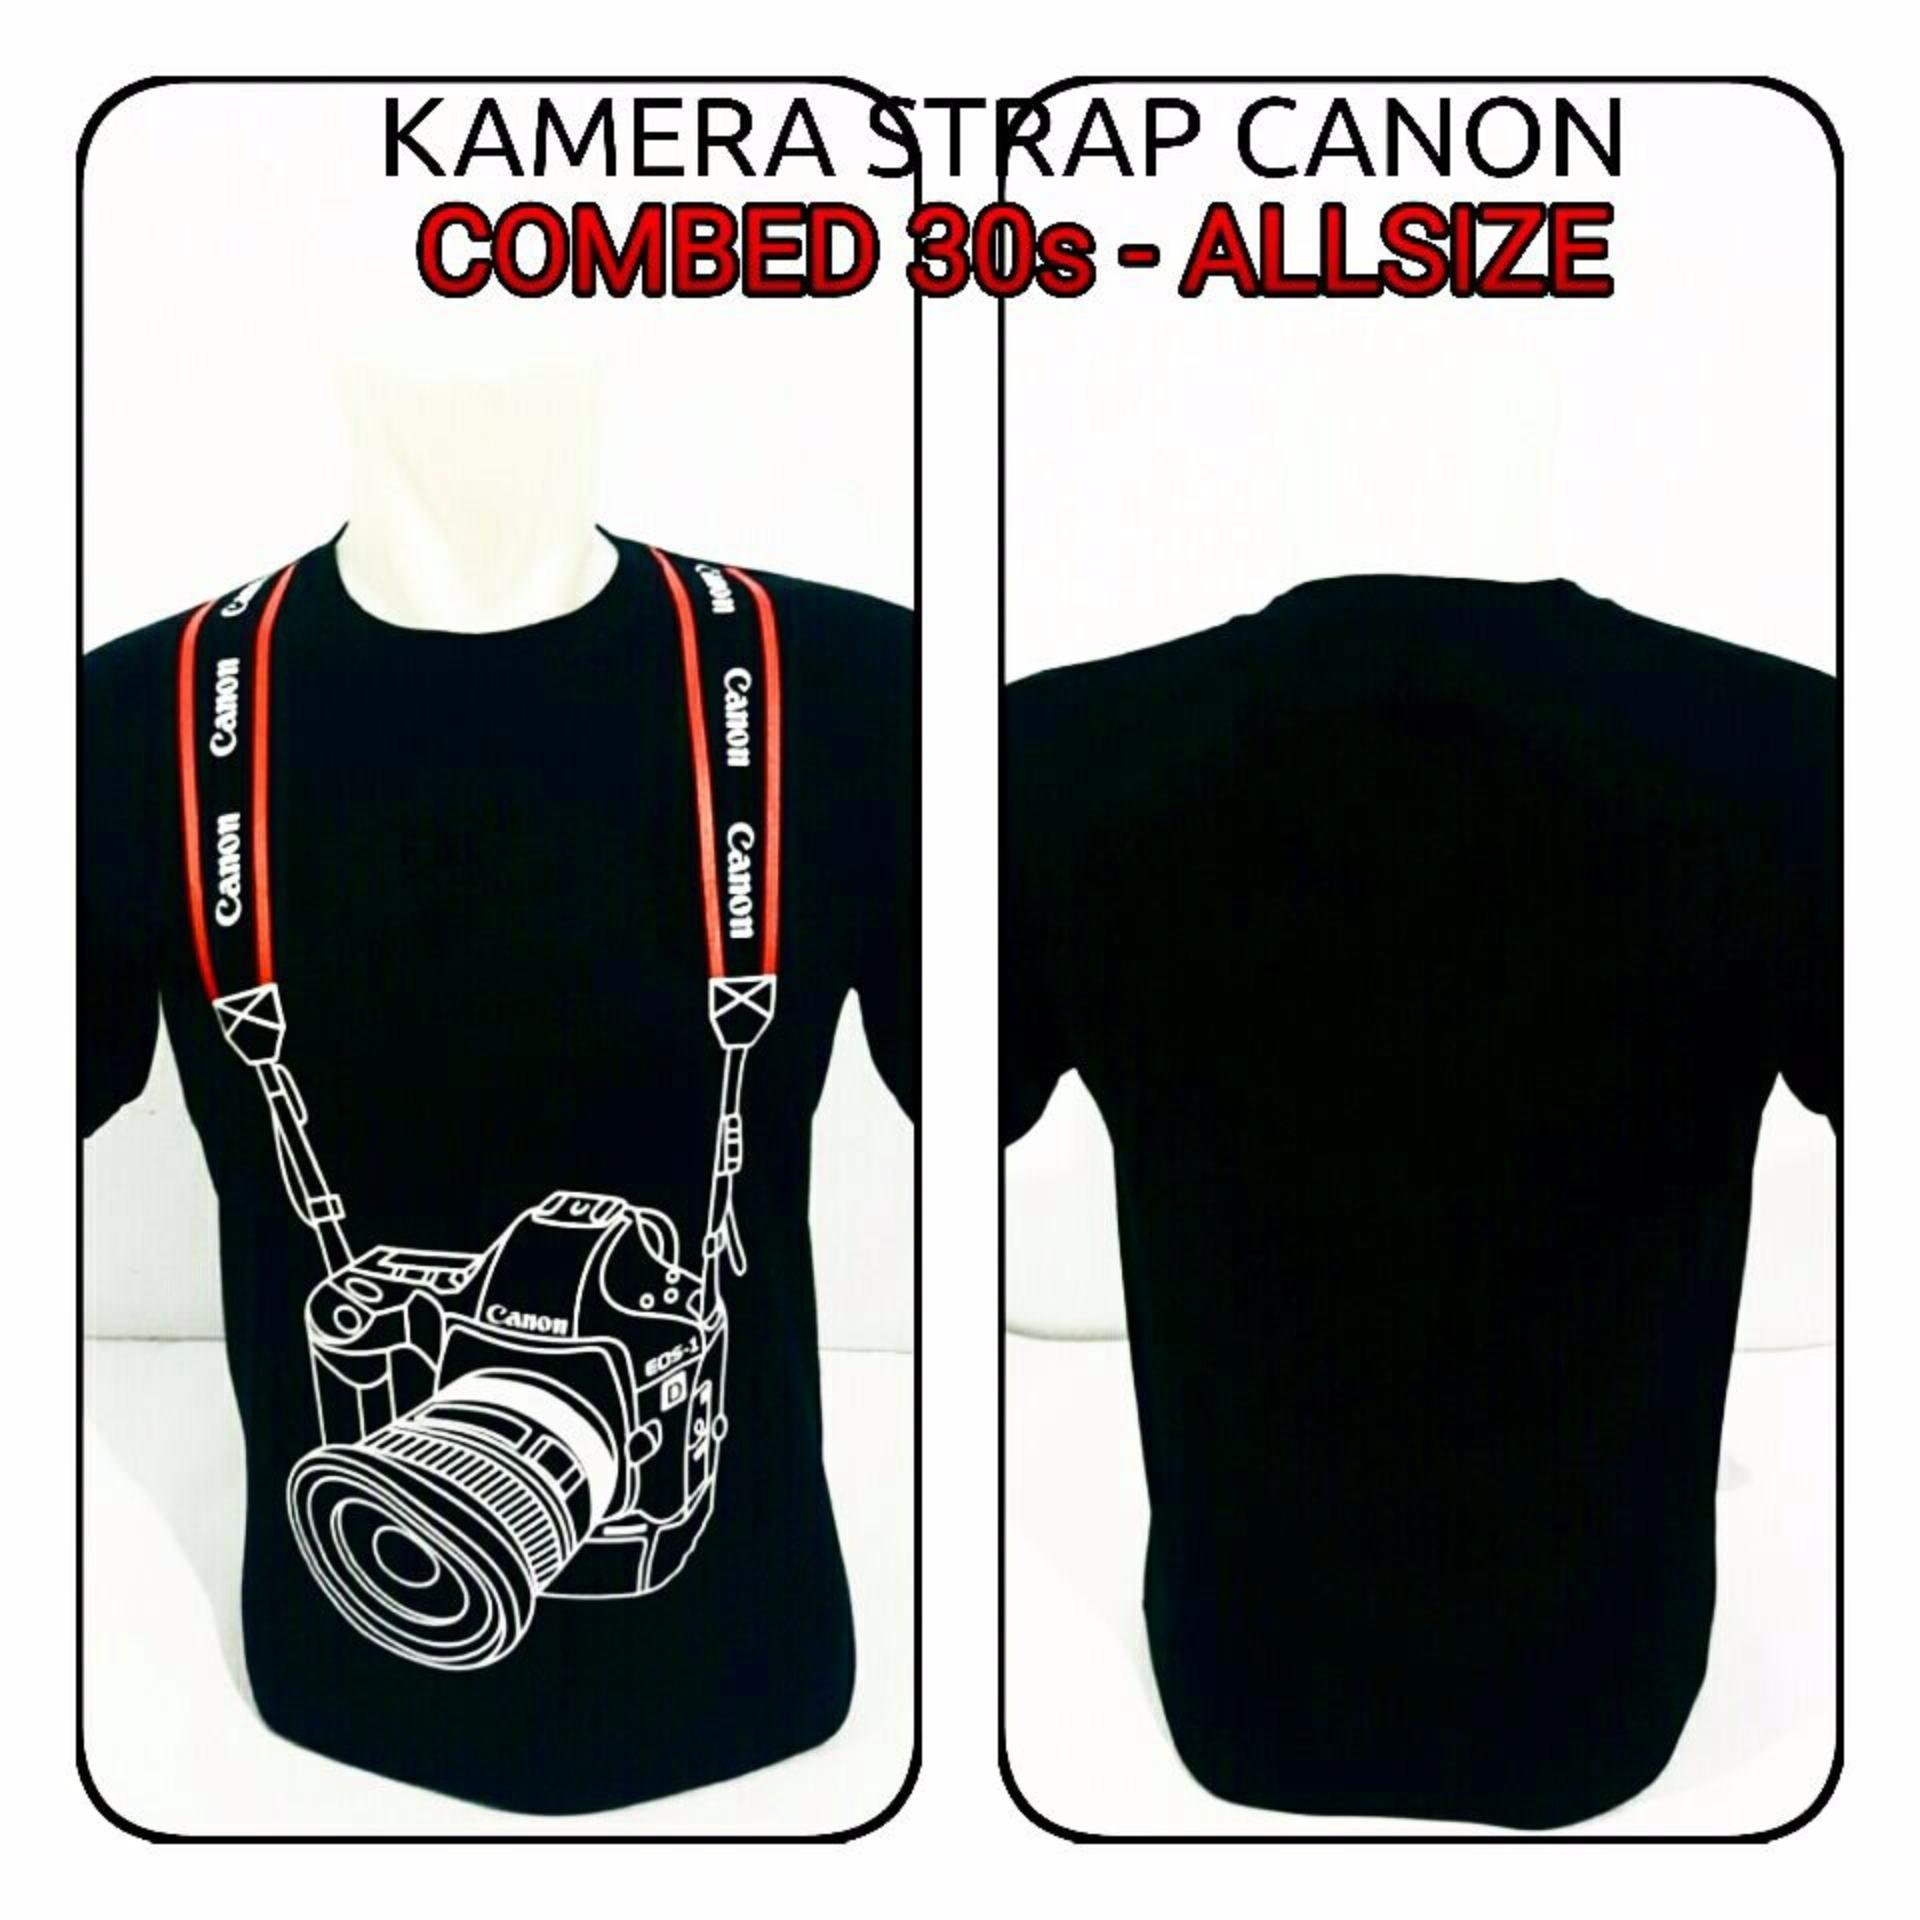 TMDK Fashion - Kaos Fashion Distro 100% Soft Cotton Combed T-Shirt Gambar Kartun